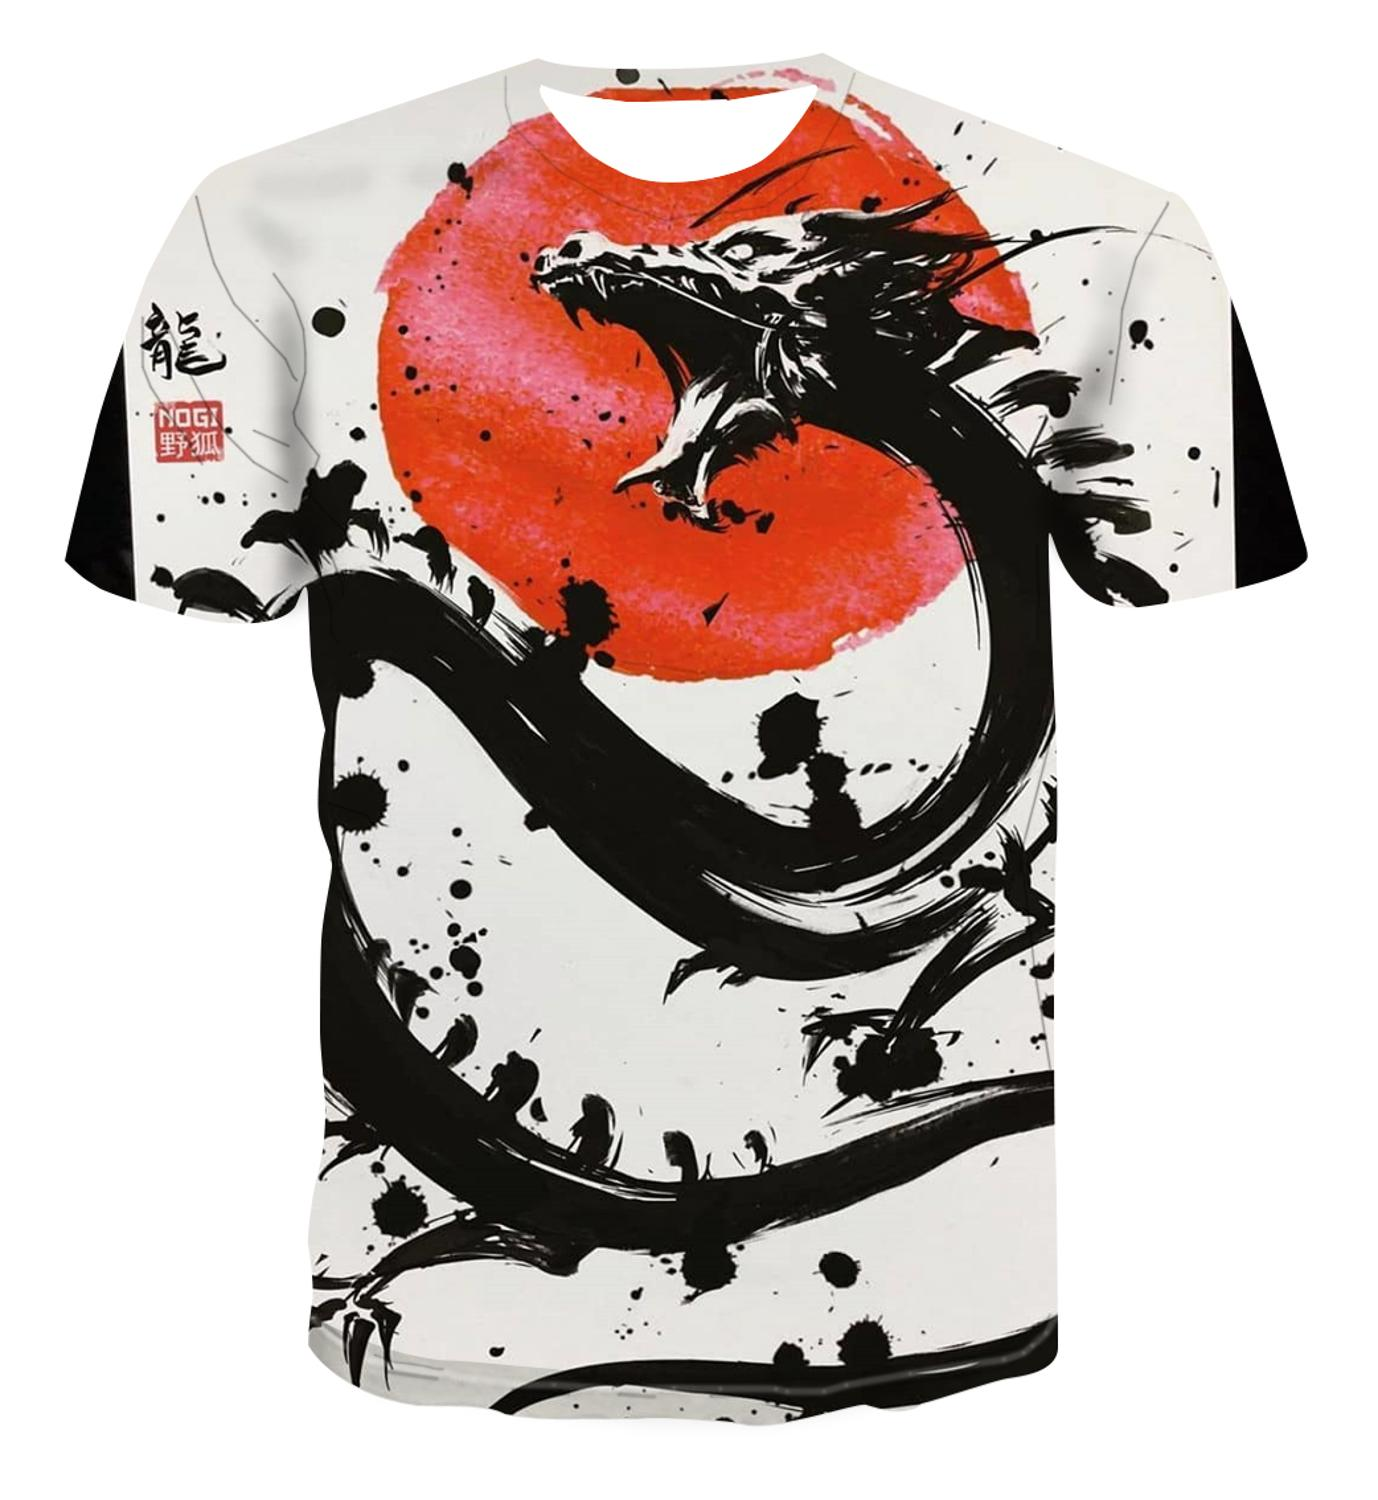 2020 Popular New Chinese Pattern 3D Printing Personalized Dragon T-shirt Casual And Versatile Men's Round Neck T-shirt S-6xl